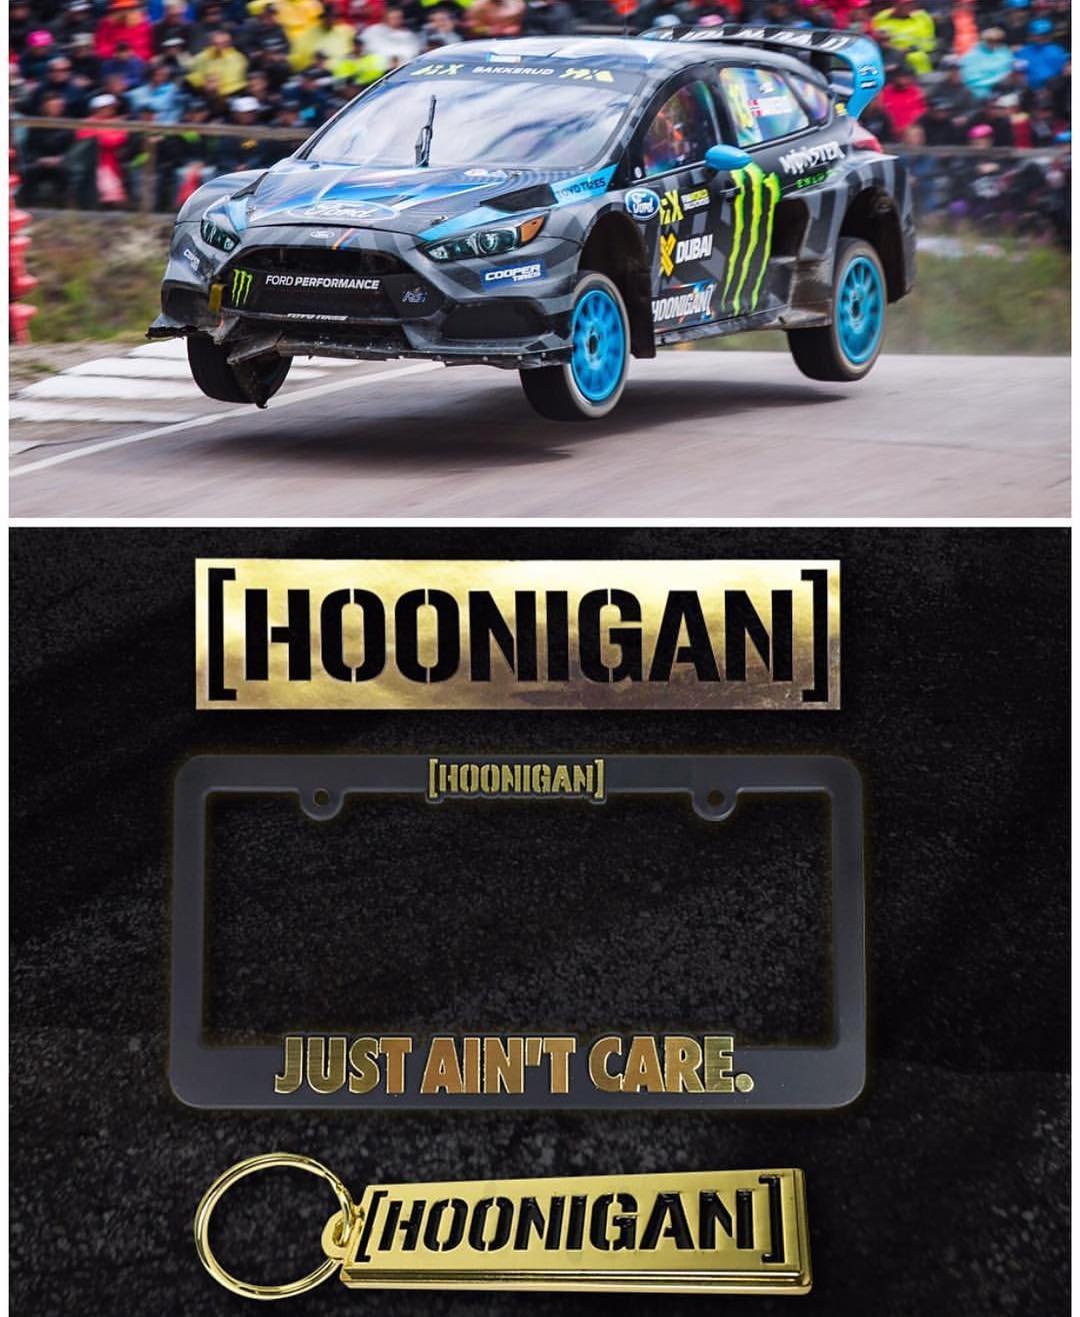 #GOLDSTICKERTIME: Congrats on back to back 1st place finishes for our dude @andreasbakkerud at @fiaworldrx! As usual - when we win, you win! Since AB is shredding so hard we are spicing up #Goldstickertime with extra goodies. You get a FREE gold HNGN...